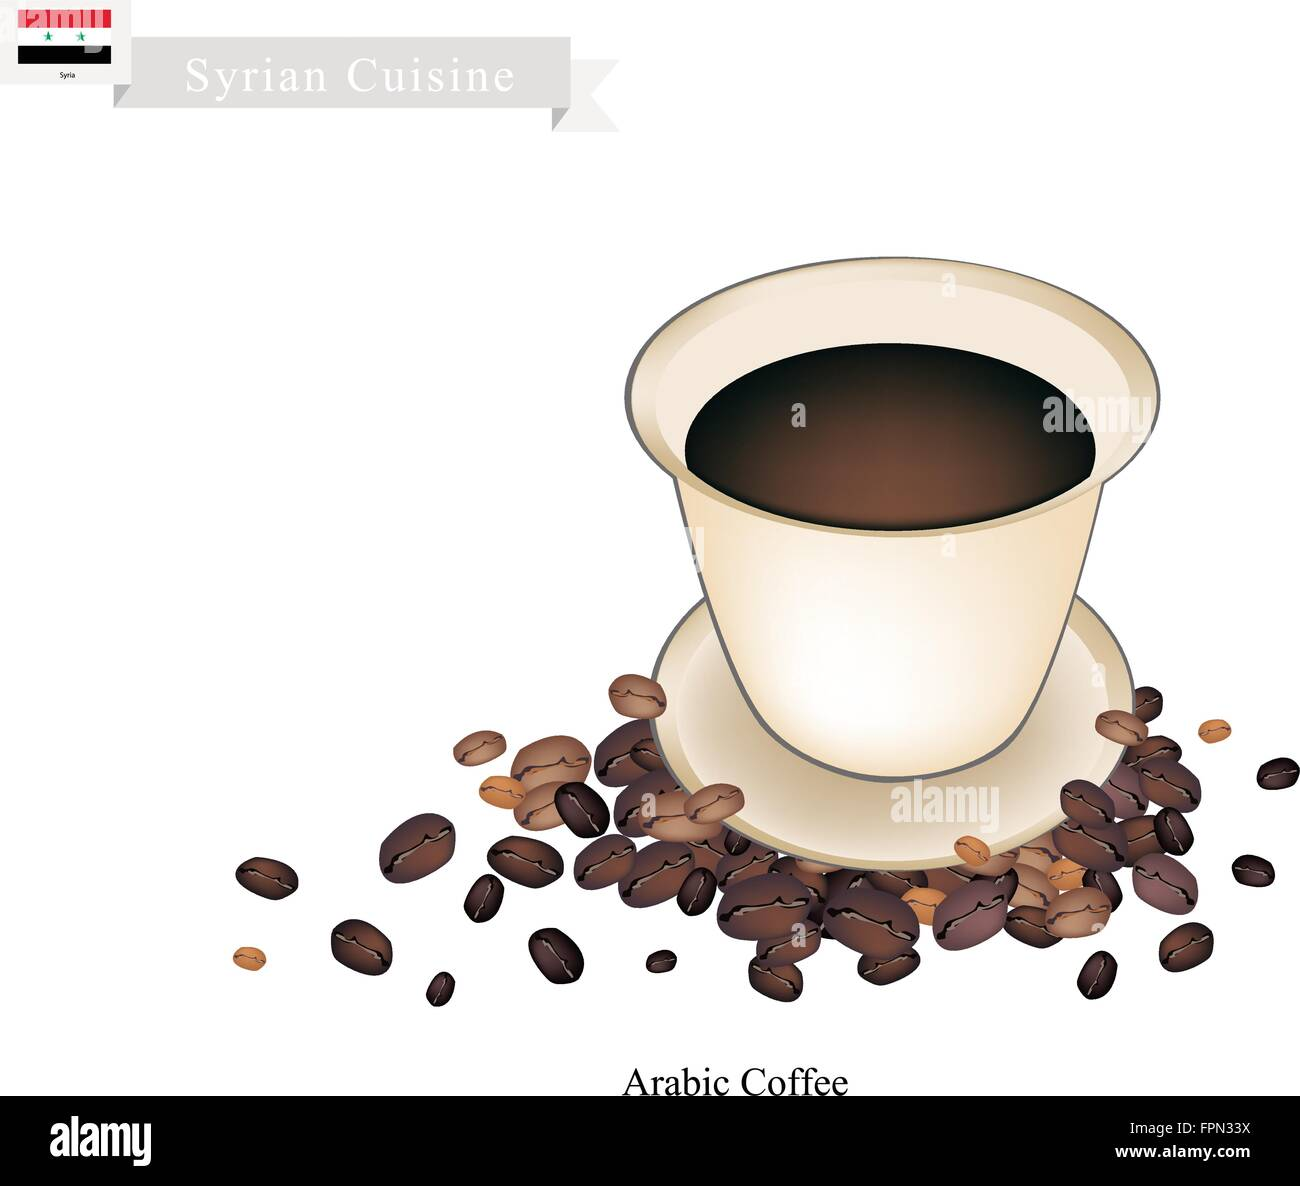 Syrian Cuisine, Arabic Coffee or Coffee Brewed from Dark Roast Coffee Beans Spiced with Cardamom. One of The Popular - Stock Vector